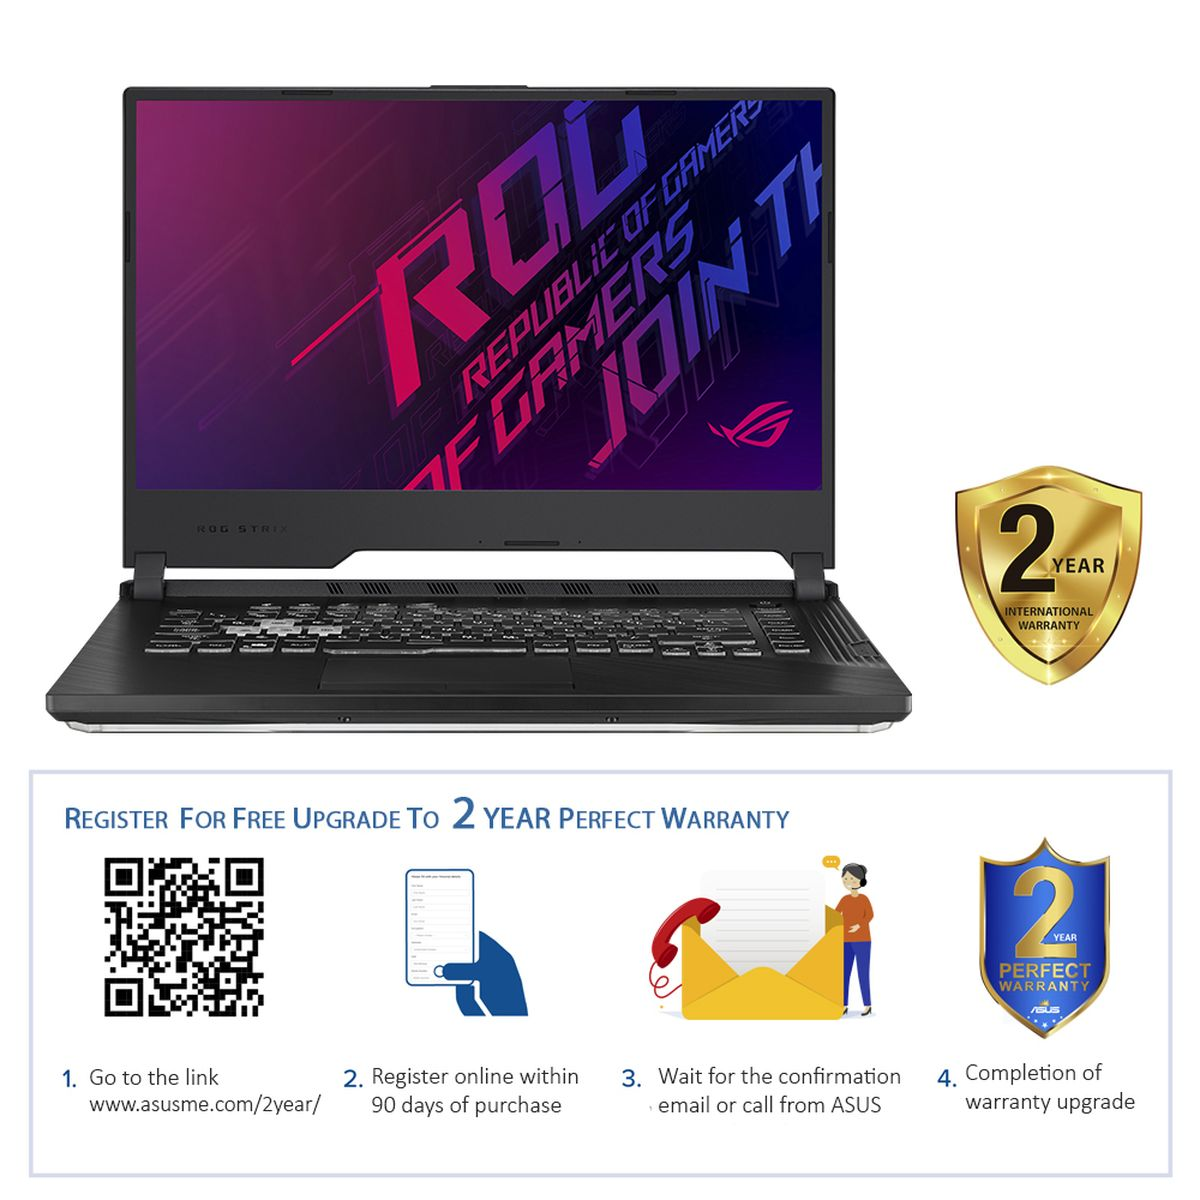 ASUS ROG STRIX G G531GU-AL237T Gaming Laptop G i7-9750H/16GB/1TB HDD+256GB SSD/NVIDIA GeForce GTX 1660Ti 6GB/15.6 Inch FHD/120Hz/Windows 1